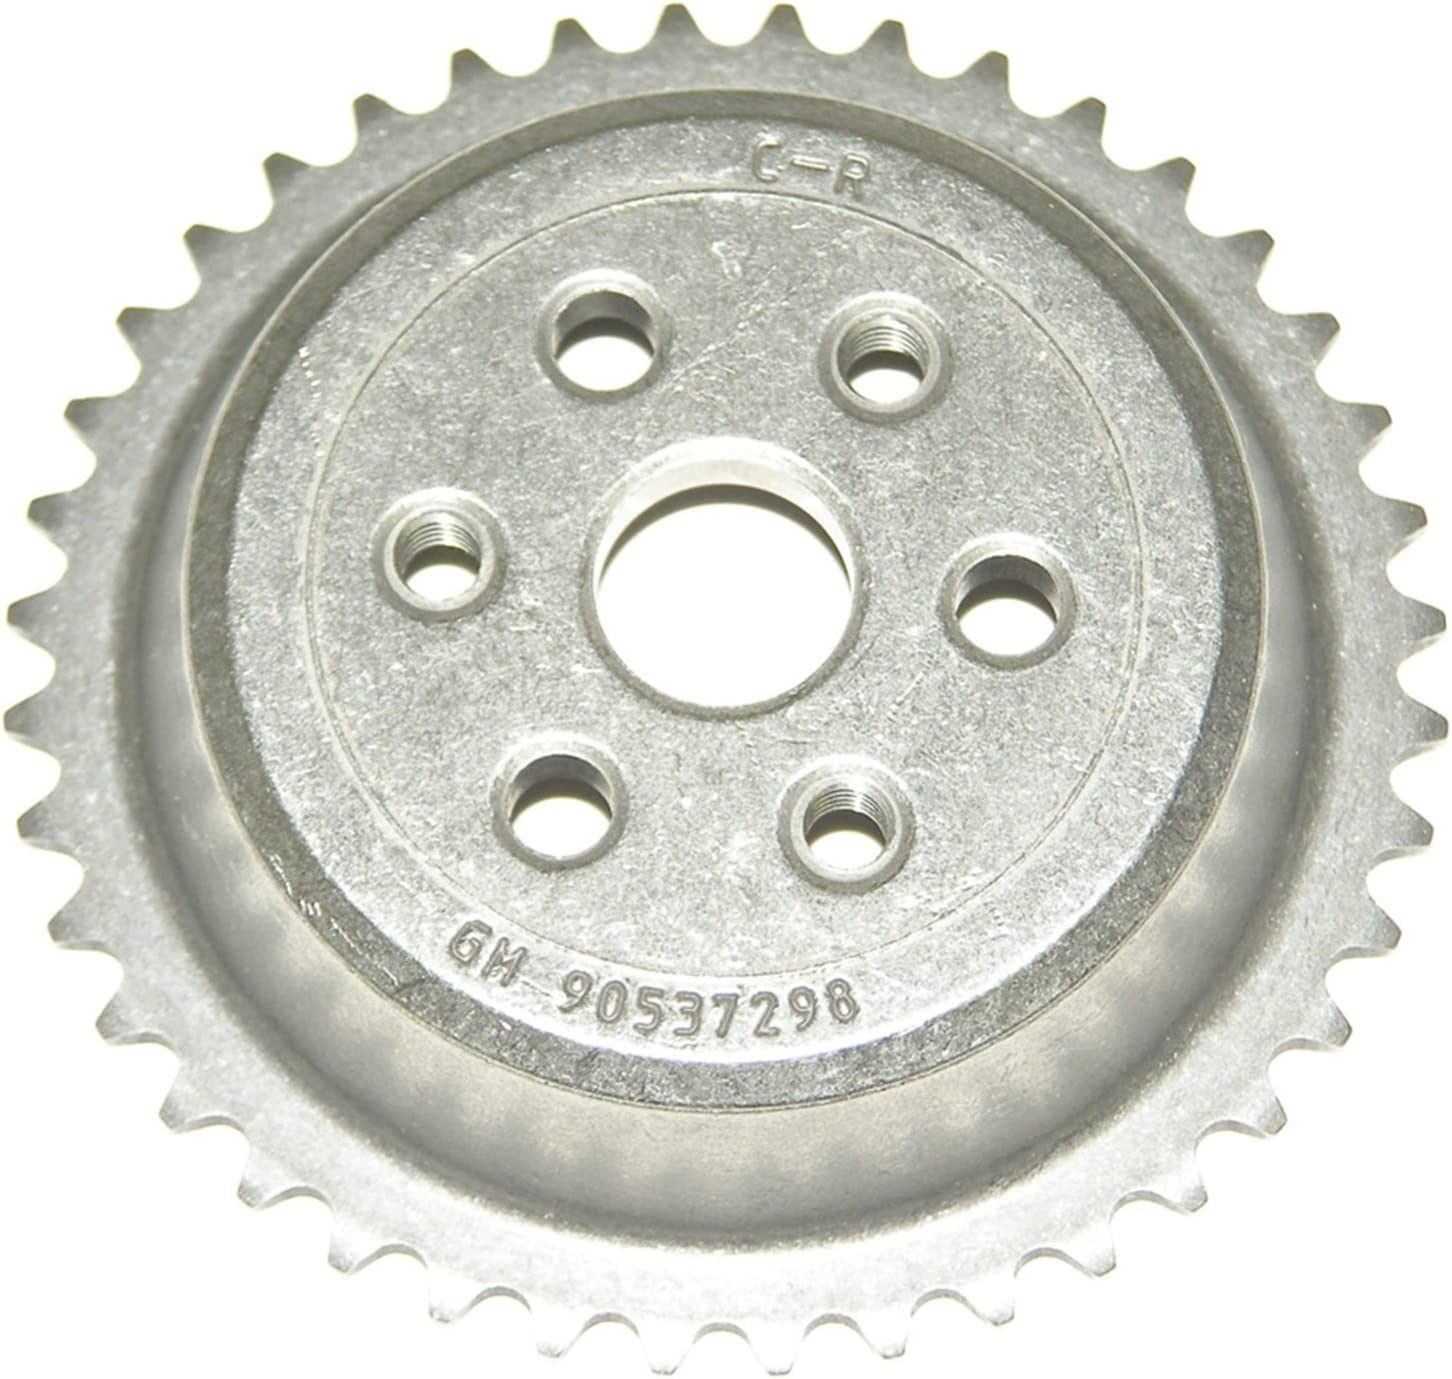 8milelake Water Pump Sprocket Retainer Holding Tool for GMVAUXHALL OPEL 2.2 Chain Drive Garage tools